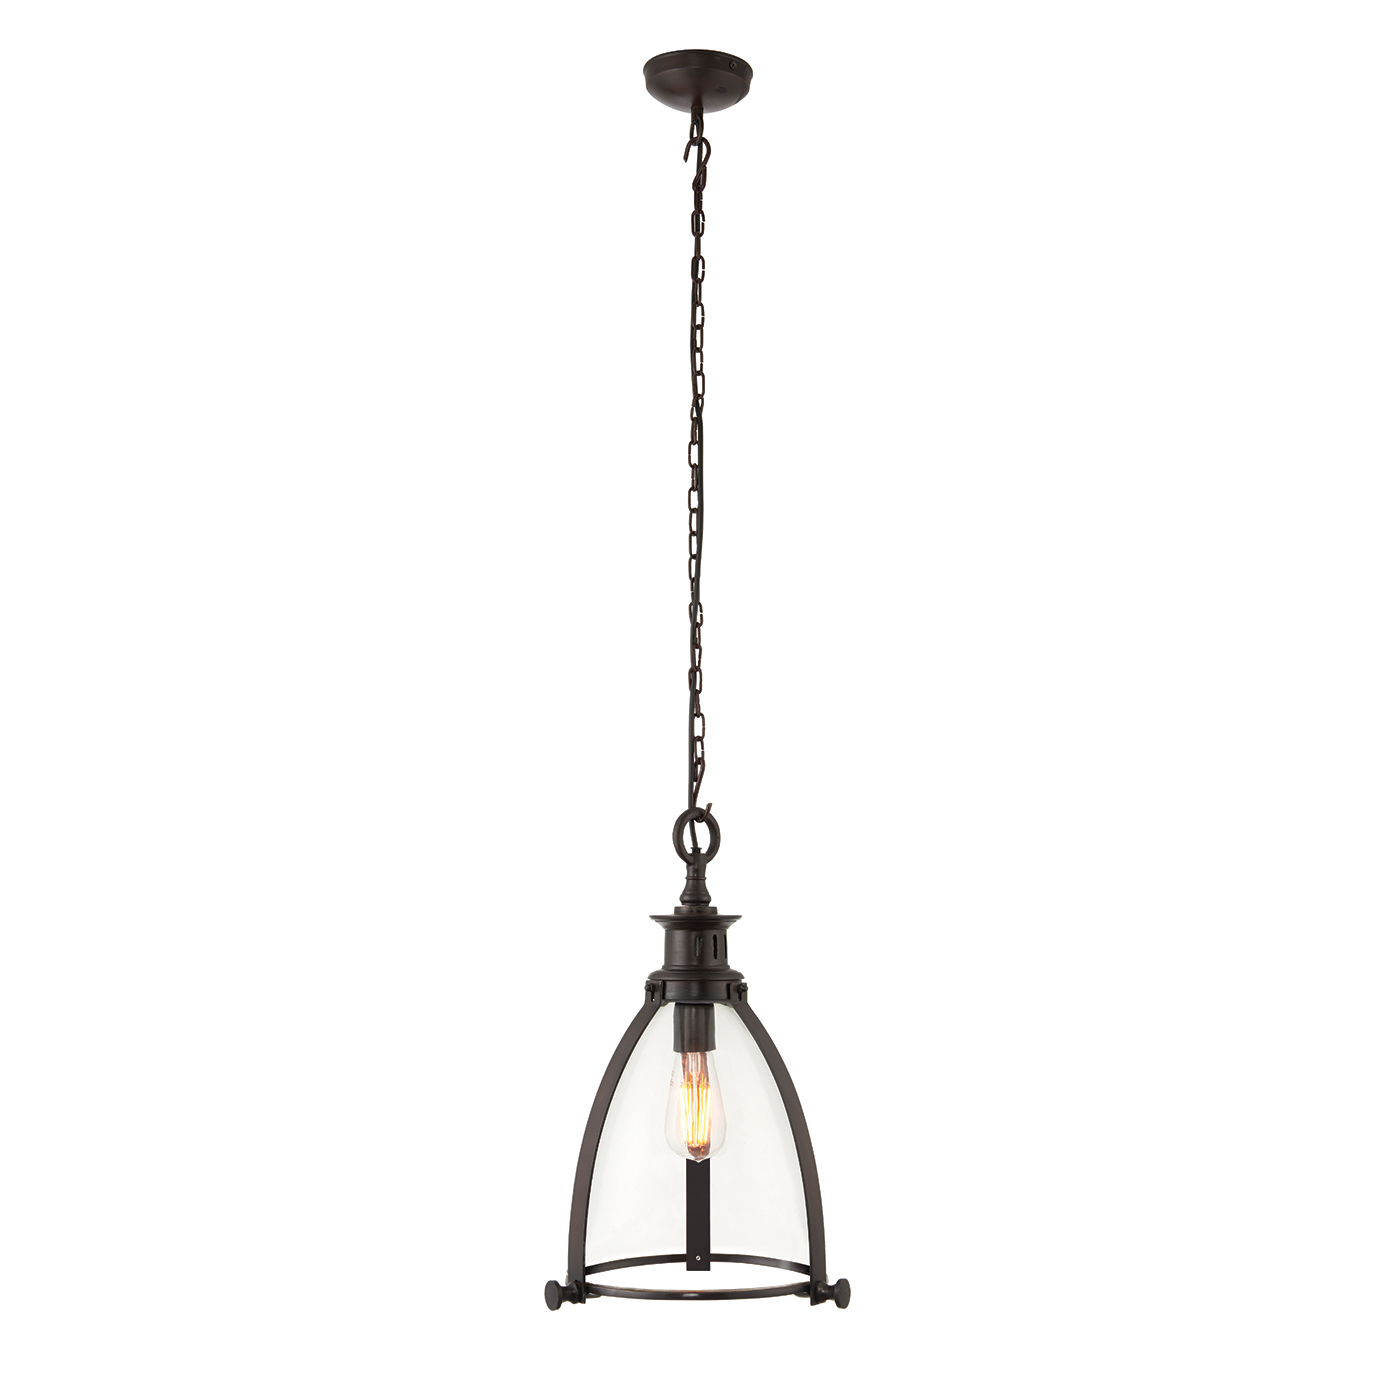 Endon Storni 285mm pendant 40W Aged bronze effect plate & clear glass Thumbnail 1